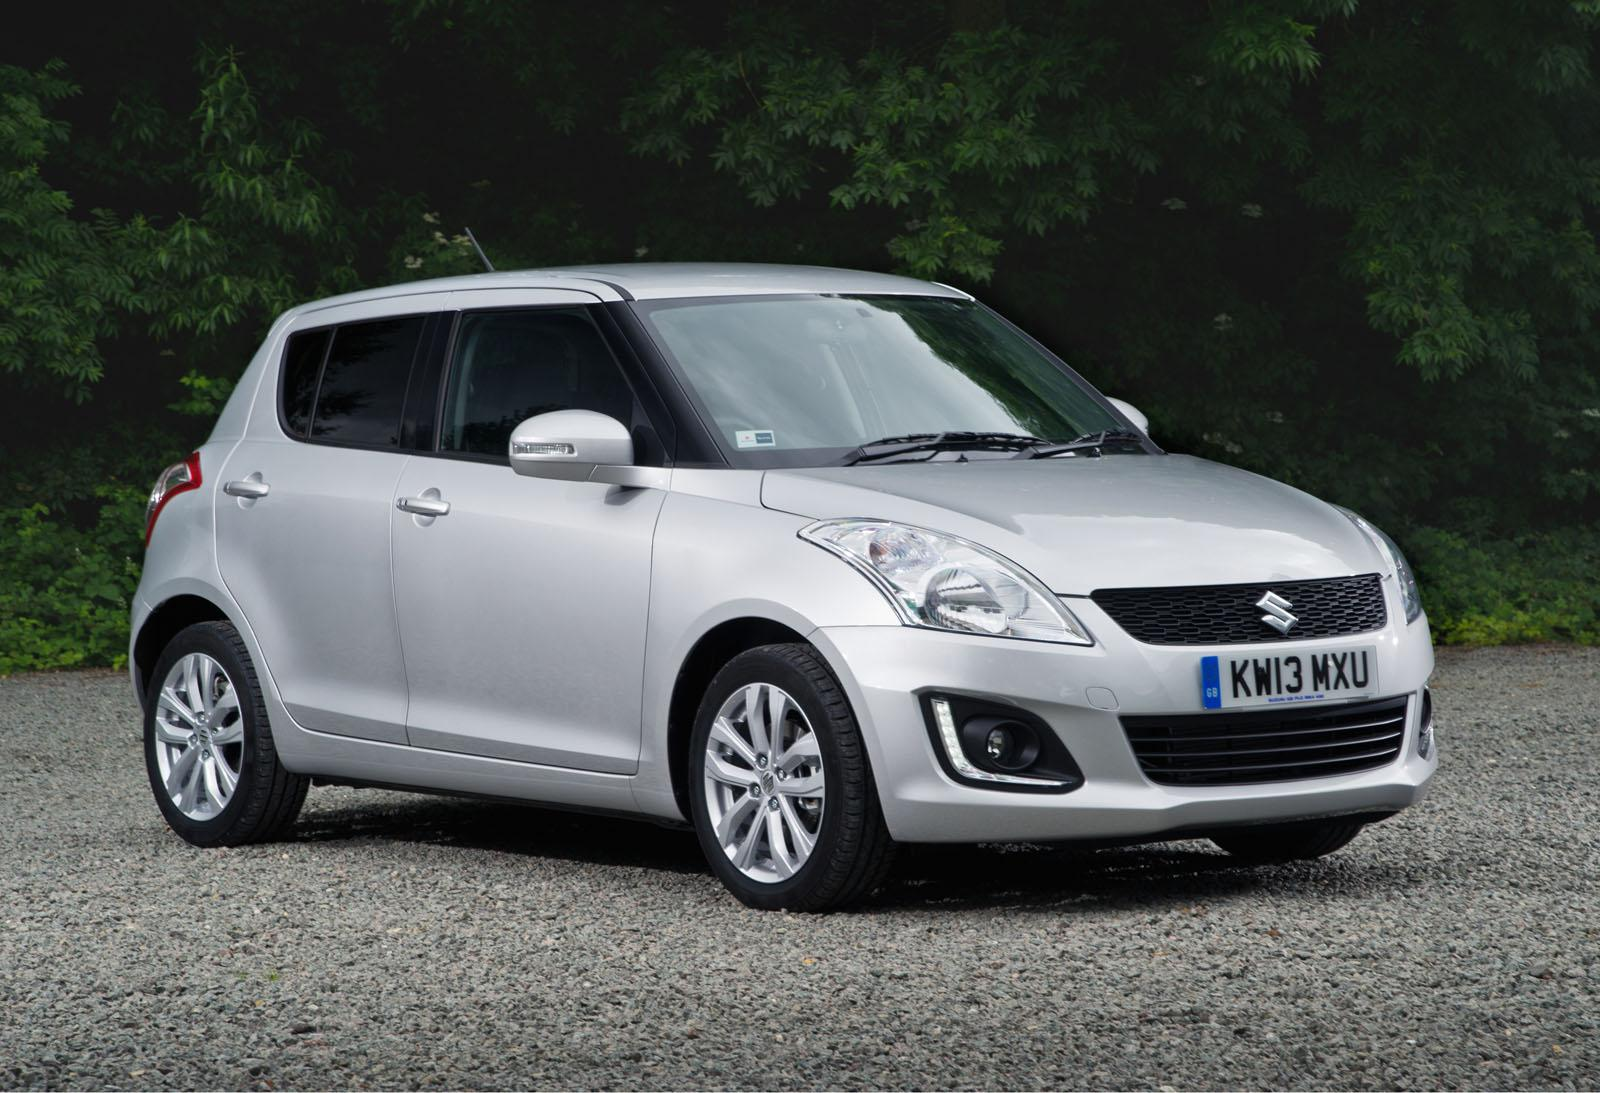 when will the suzuki swift facelift come to pakistan pakwheels blog. Black Bedroom Furniture Sets. Home Design Ideas